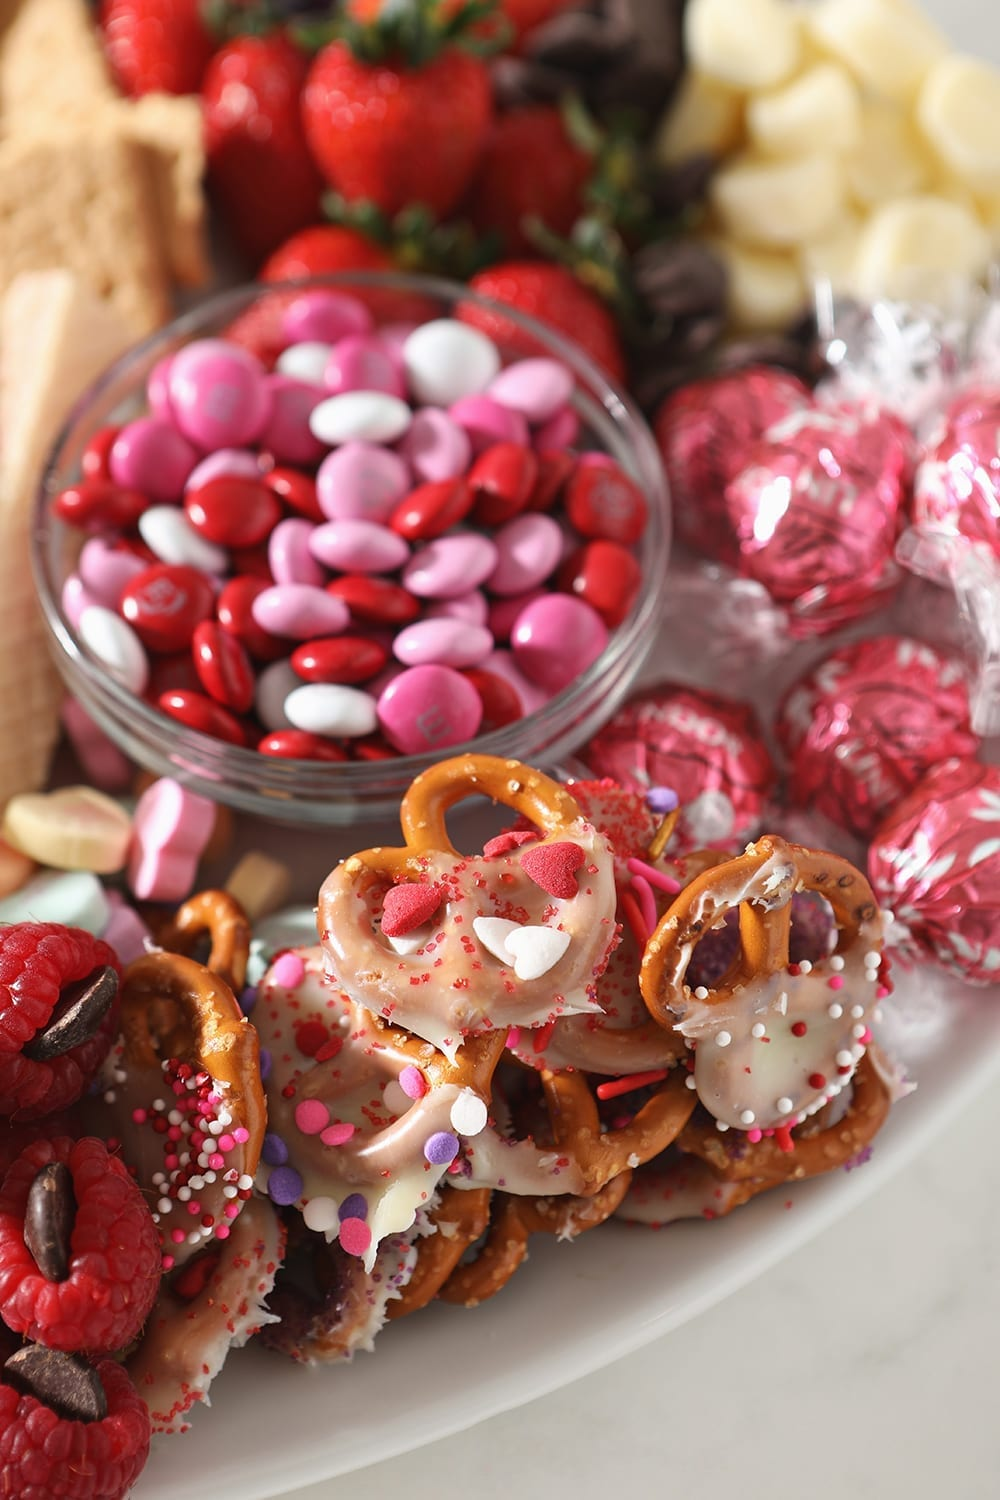 Close up of pink and white ingredients, including candies, white chocolate pretzels and more, on the platter